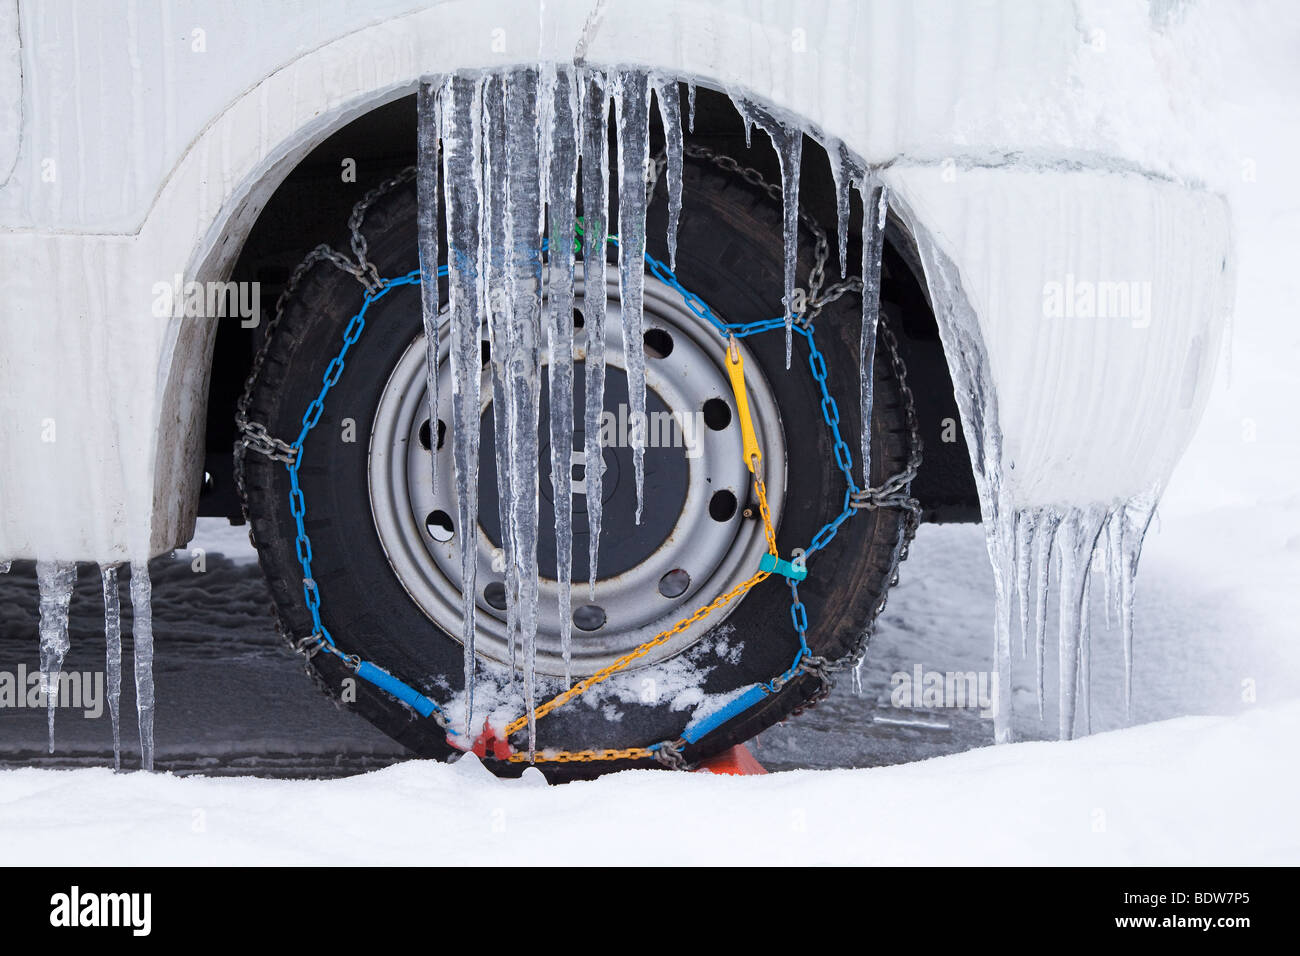 Camper van with Snow chains, winter snow, French Alps, France - Stock Image